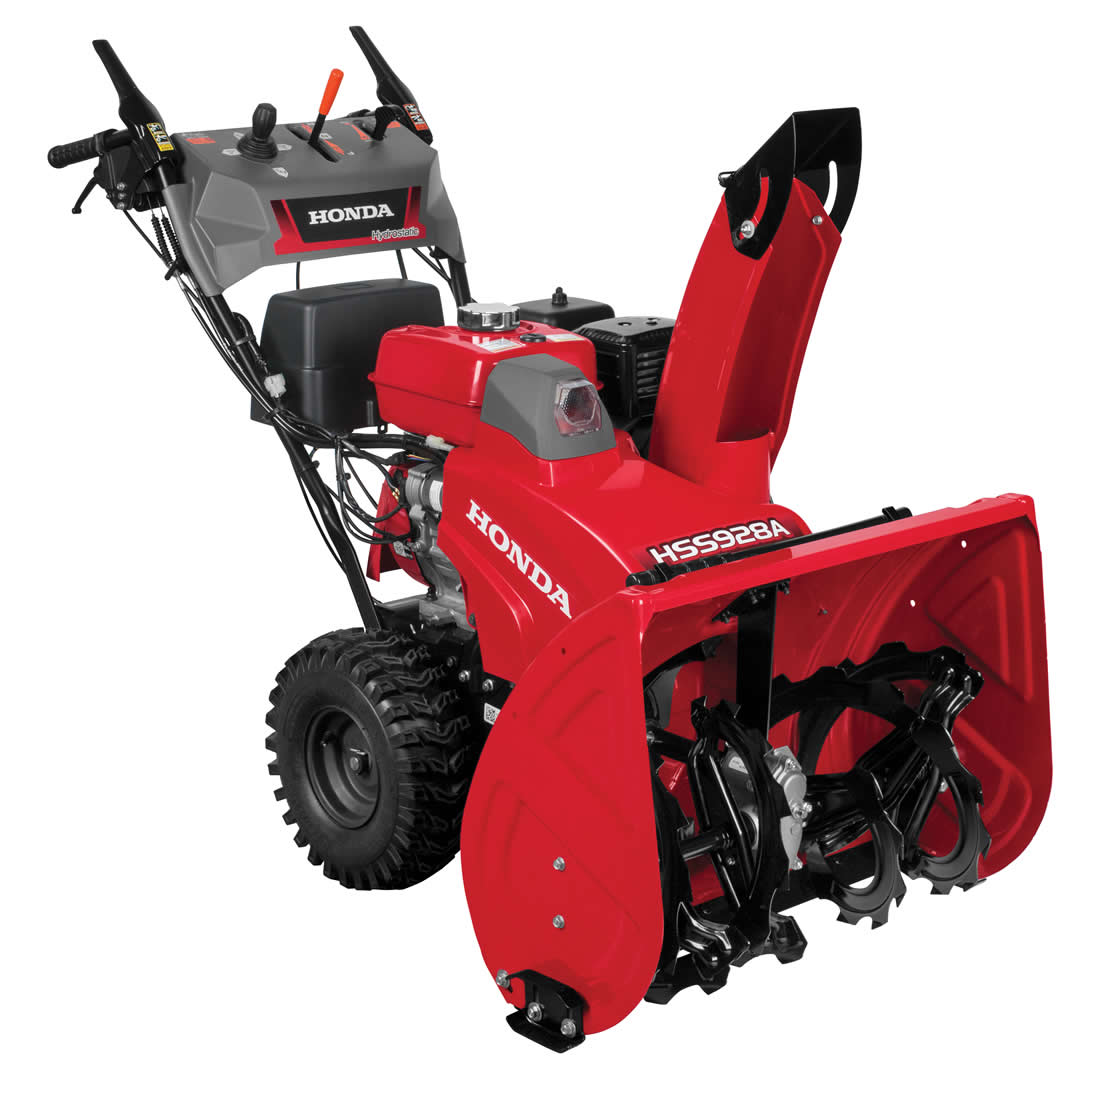 Picture of Honda HSS928AAWD Snow Blower, Gas, 270 cc Engine Displacement, 4-Cycle OHV Engine, 2 -Stage, 52 ft Throw